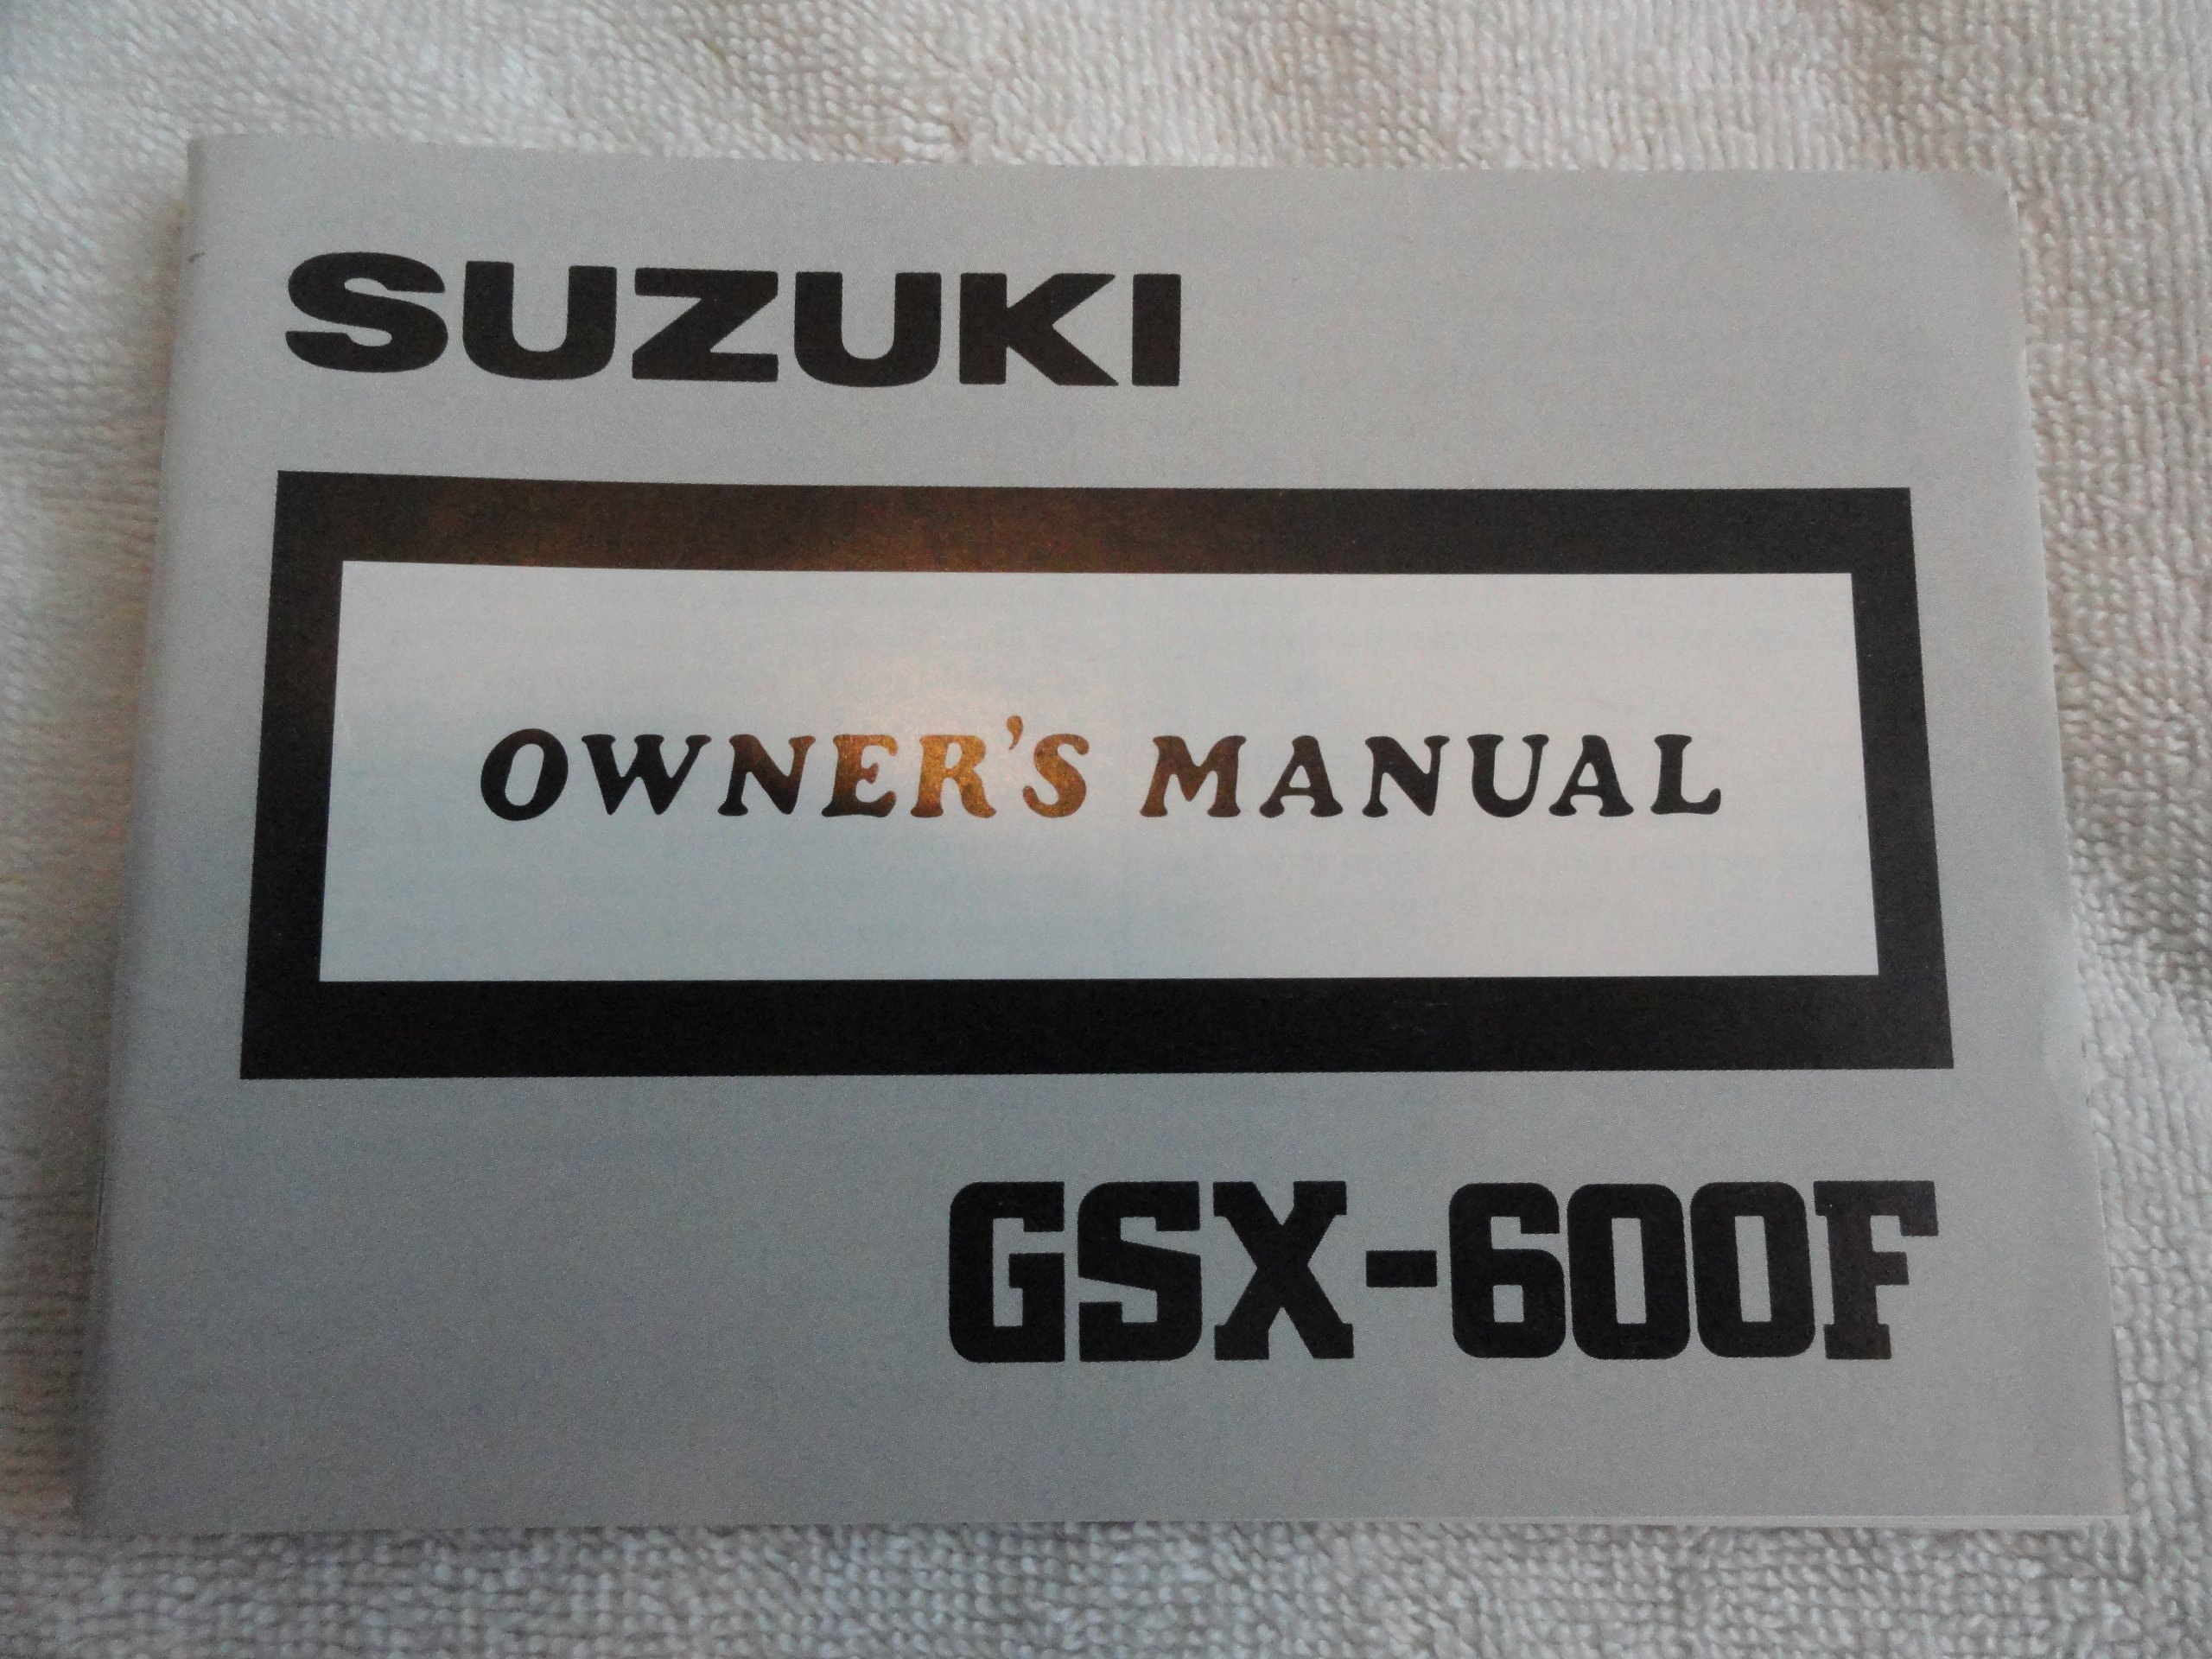 1988 1989 Suzuki GSX-600F Owners Manual GSX 600 F: Suzuki: Amazon.com: Books